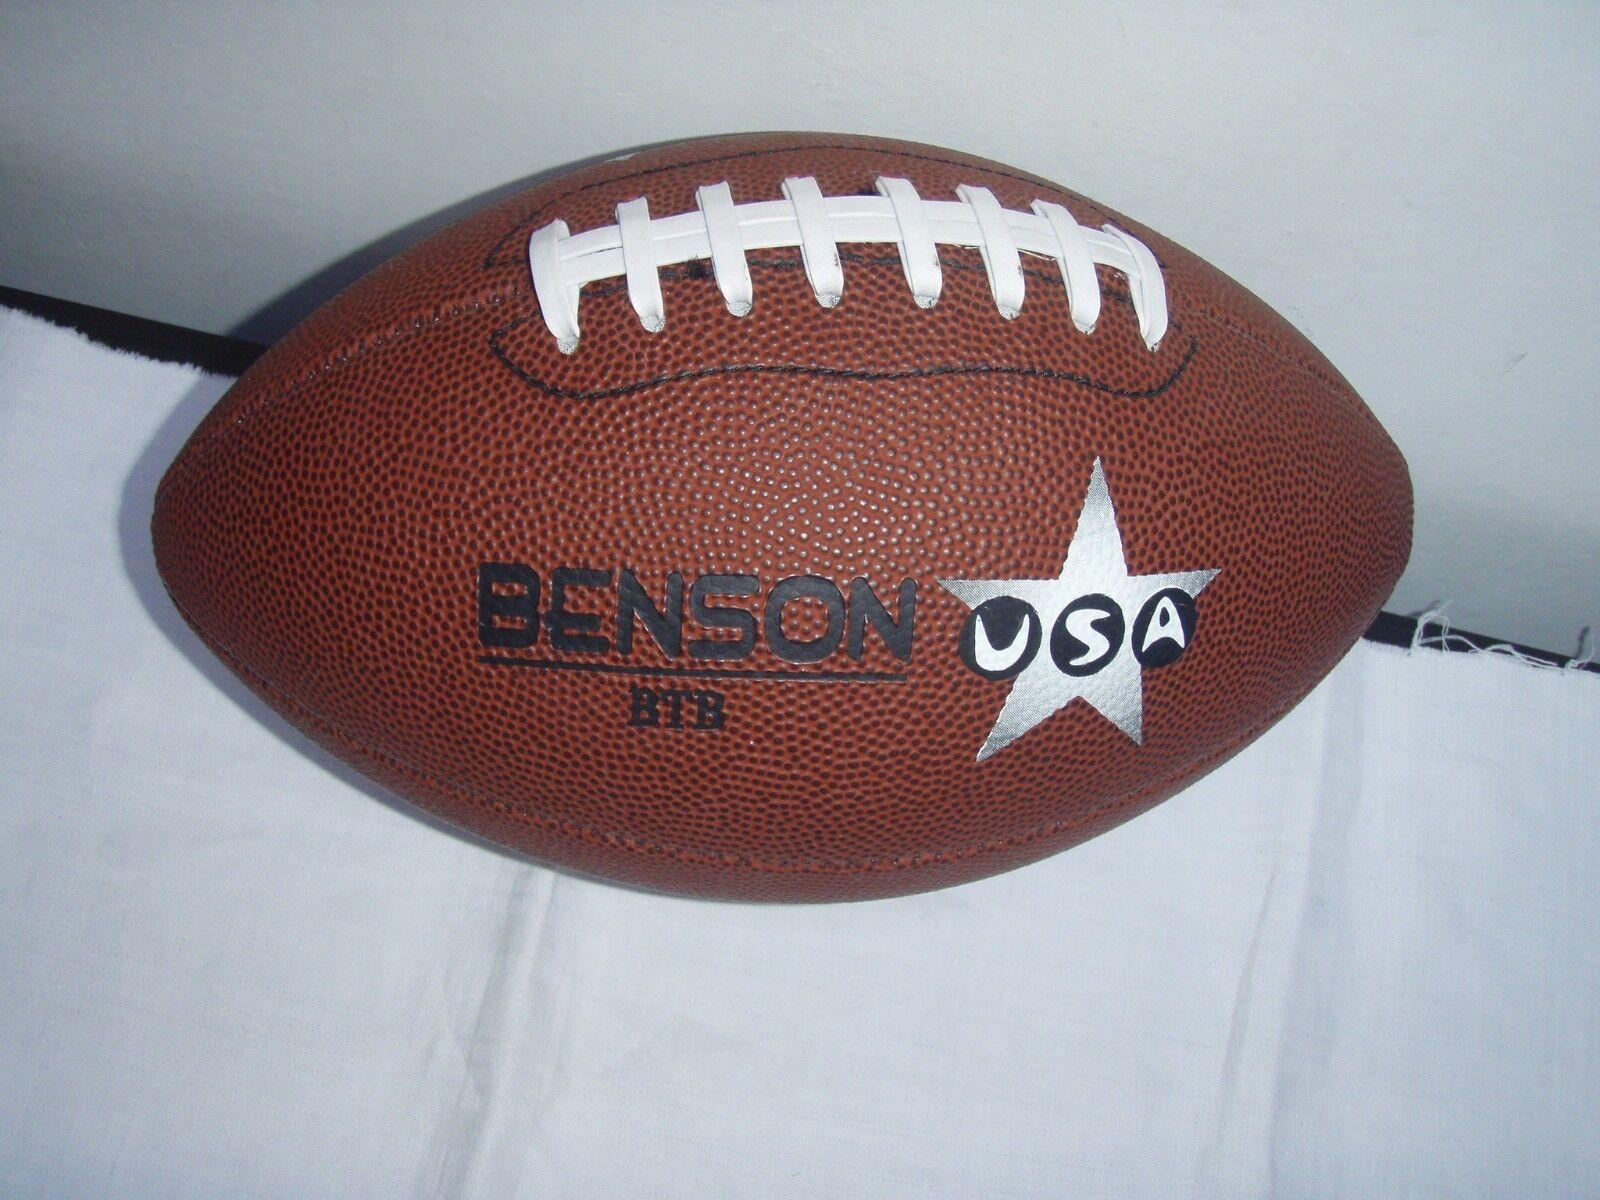 Benson by Forelle - American Football Ball - Super Bowl - neu